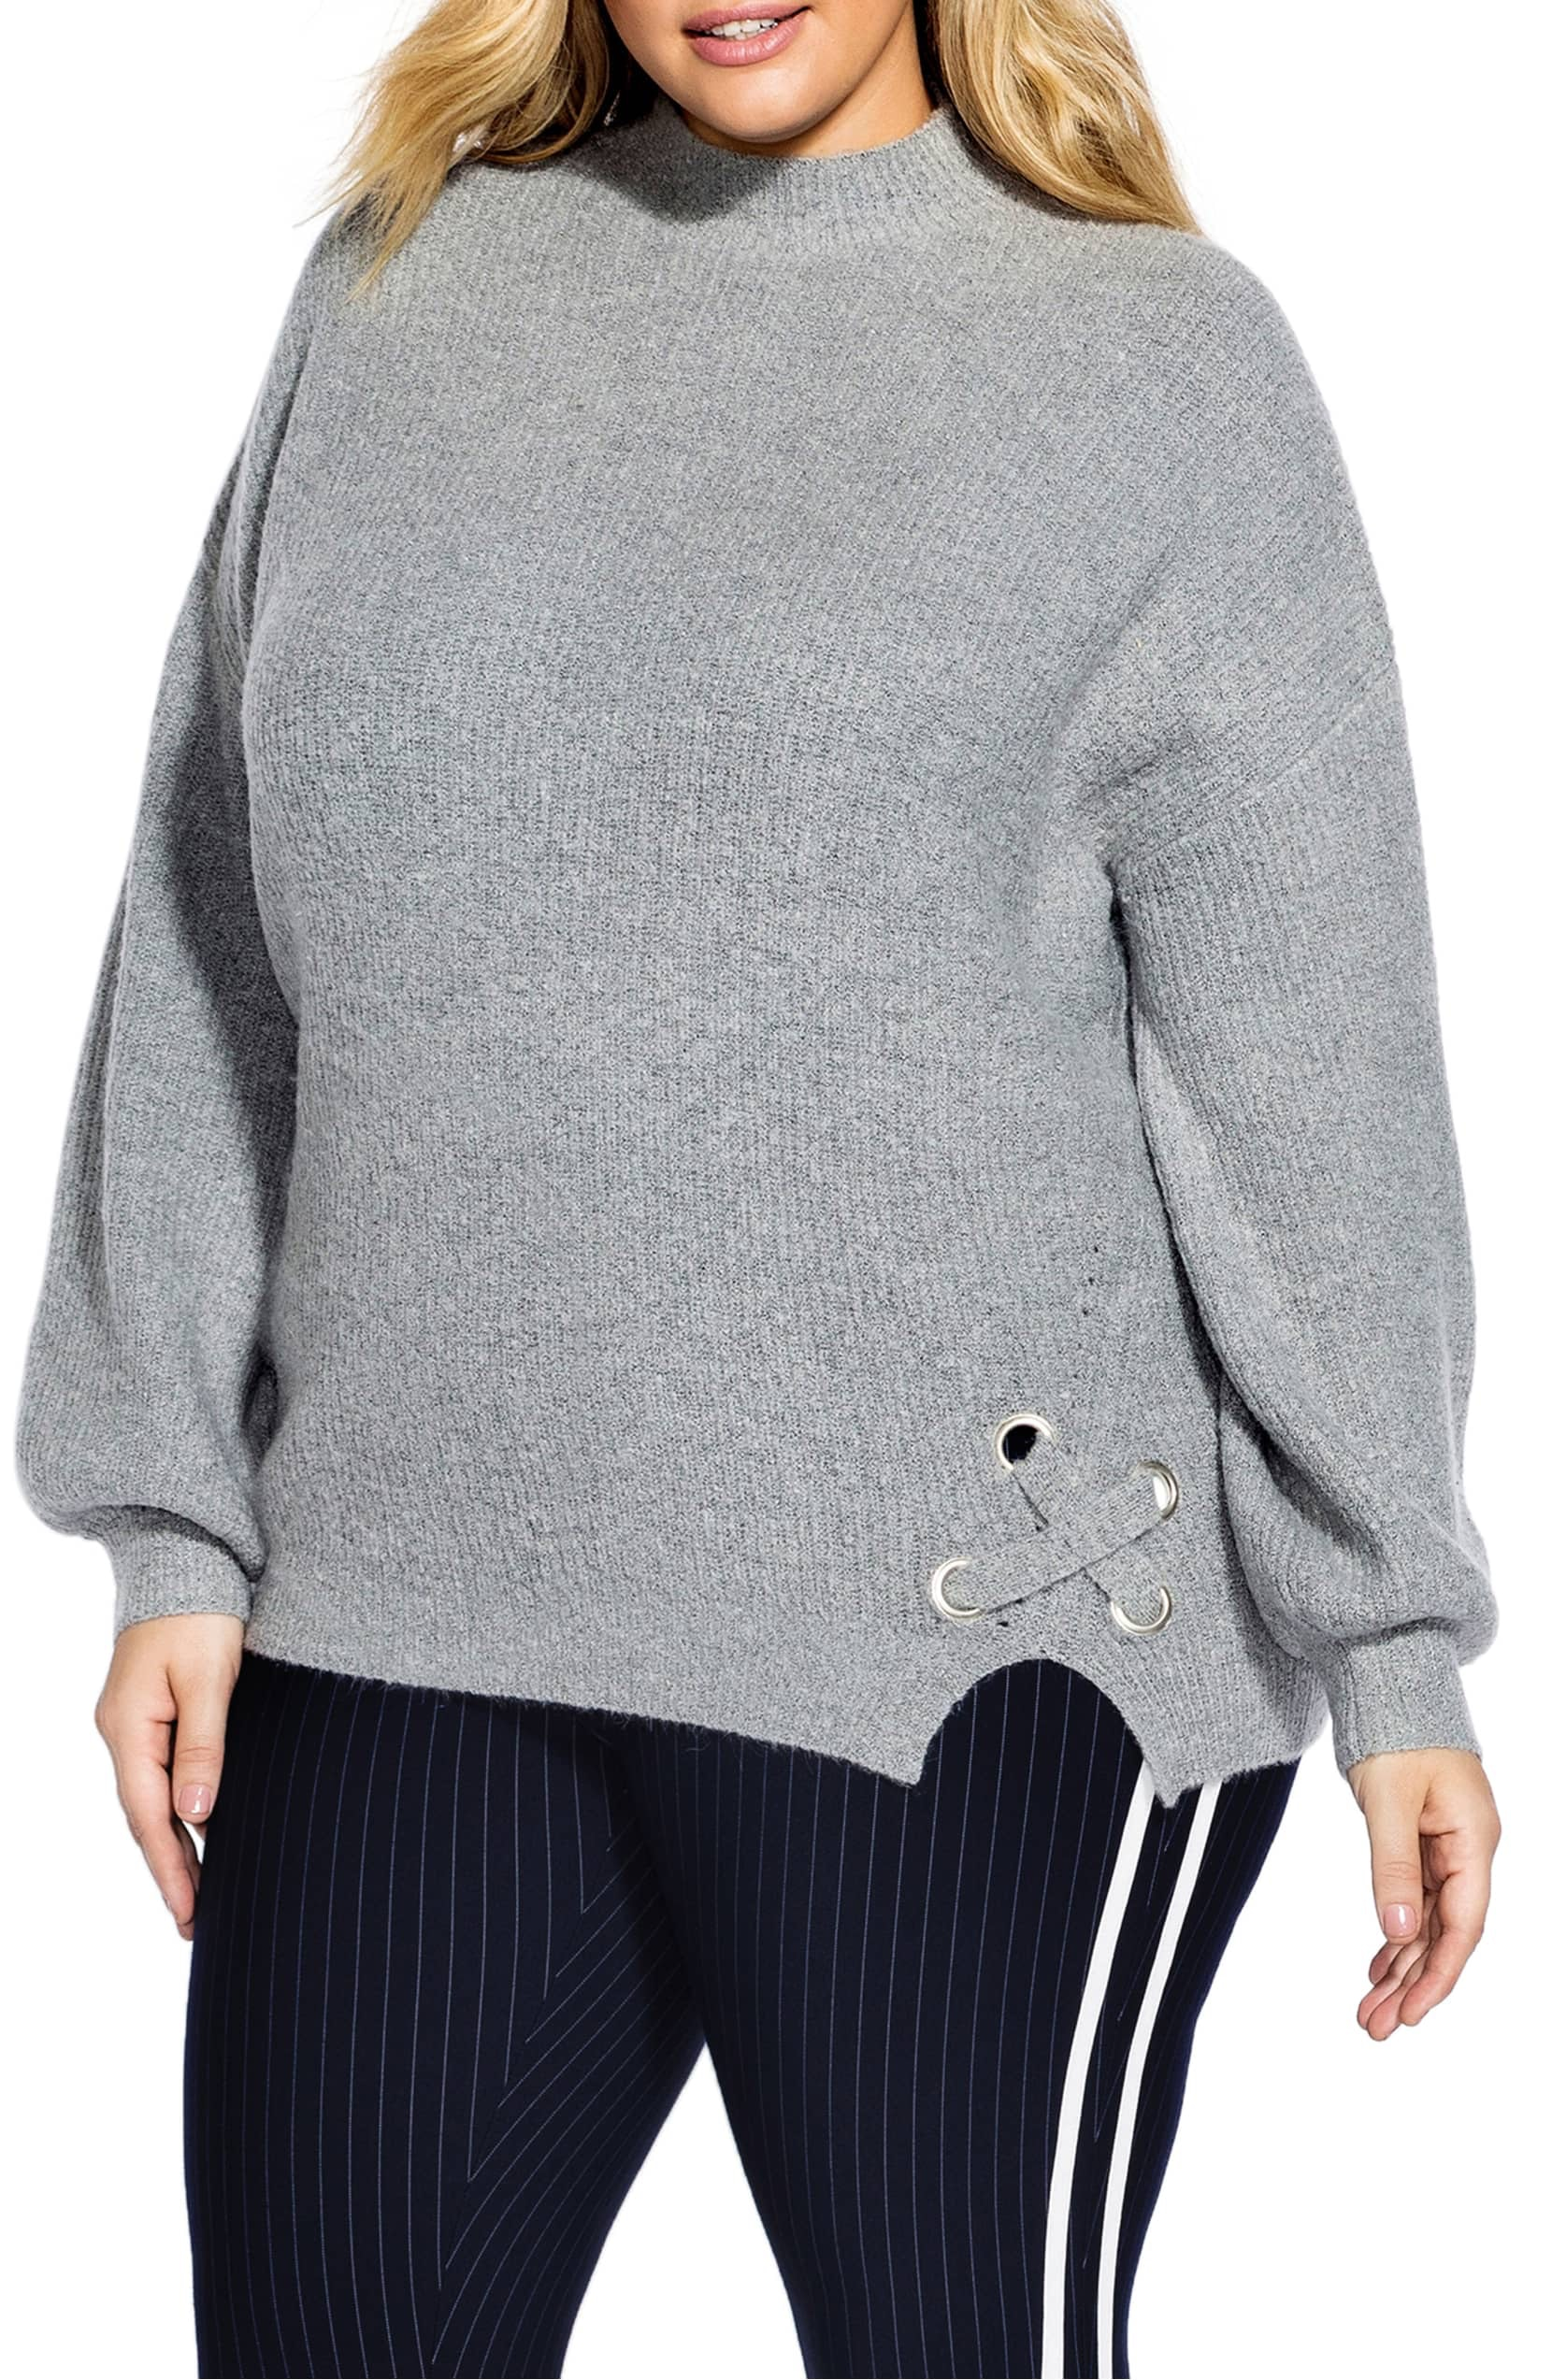 dbfa2ec19a The Plus-Size Sweater That I m Living In All Winter 2019